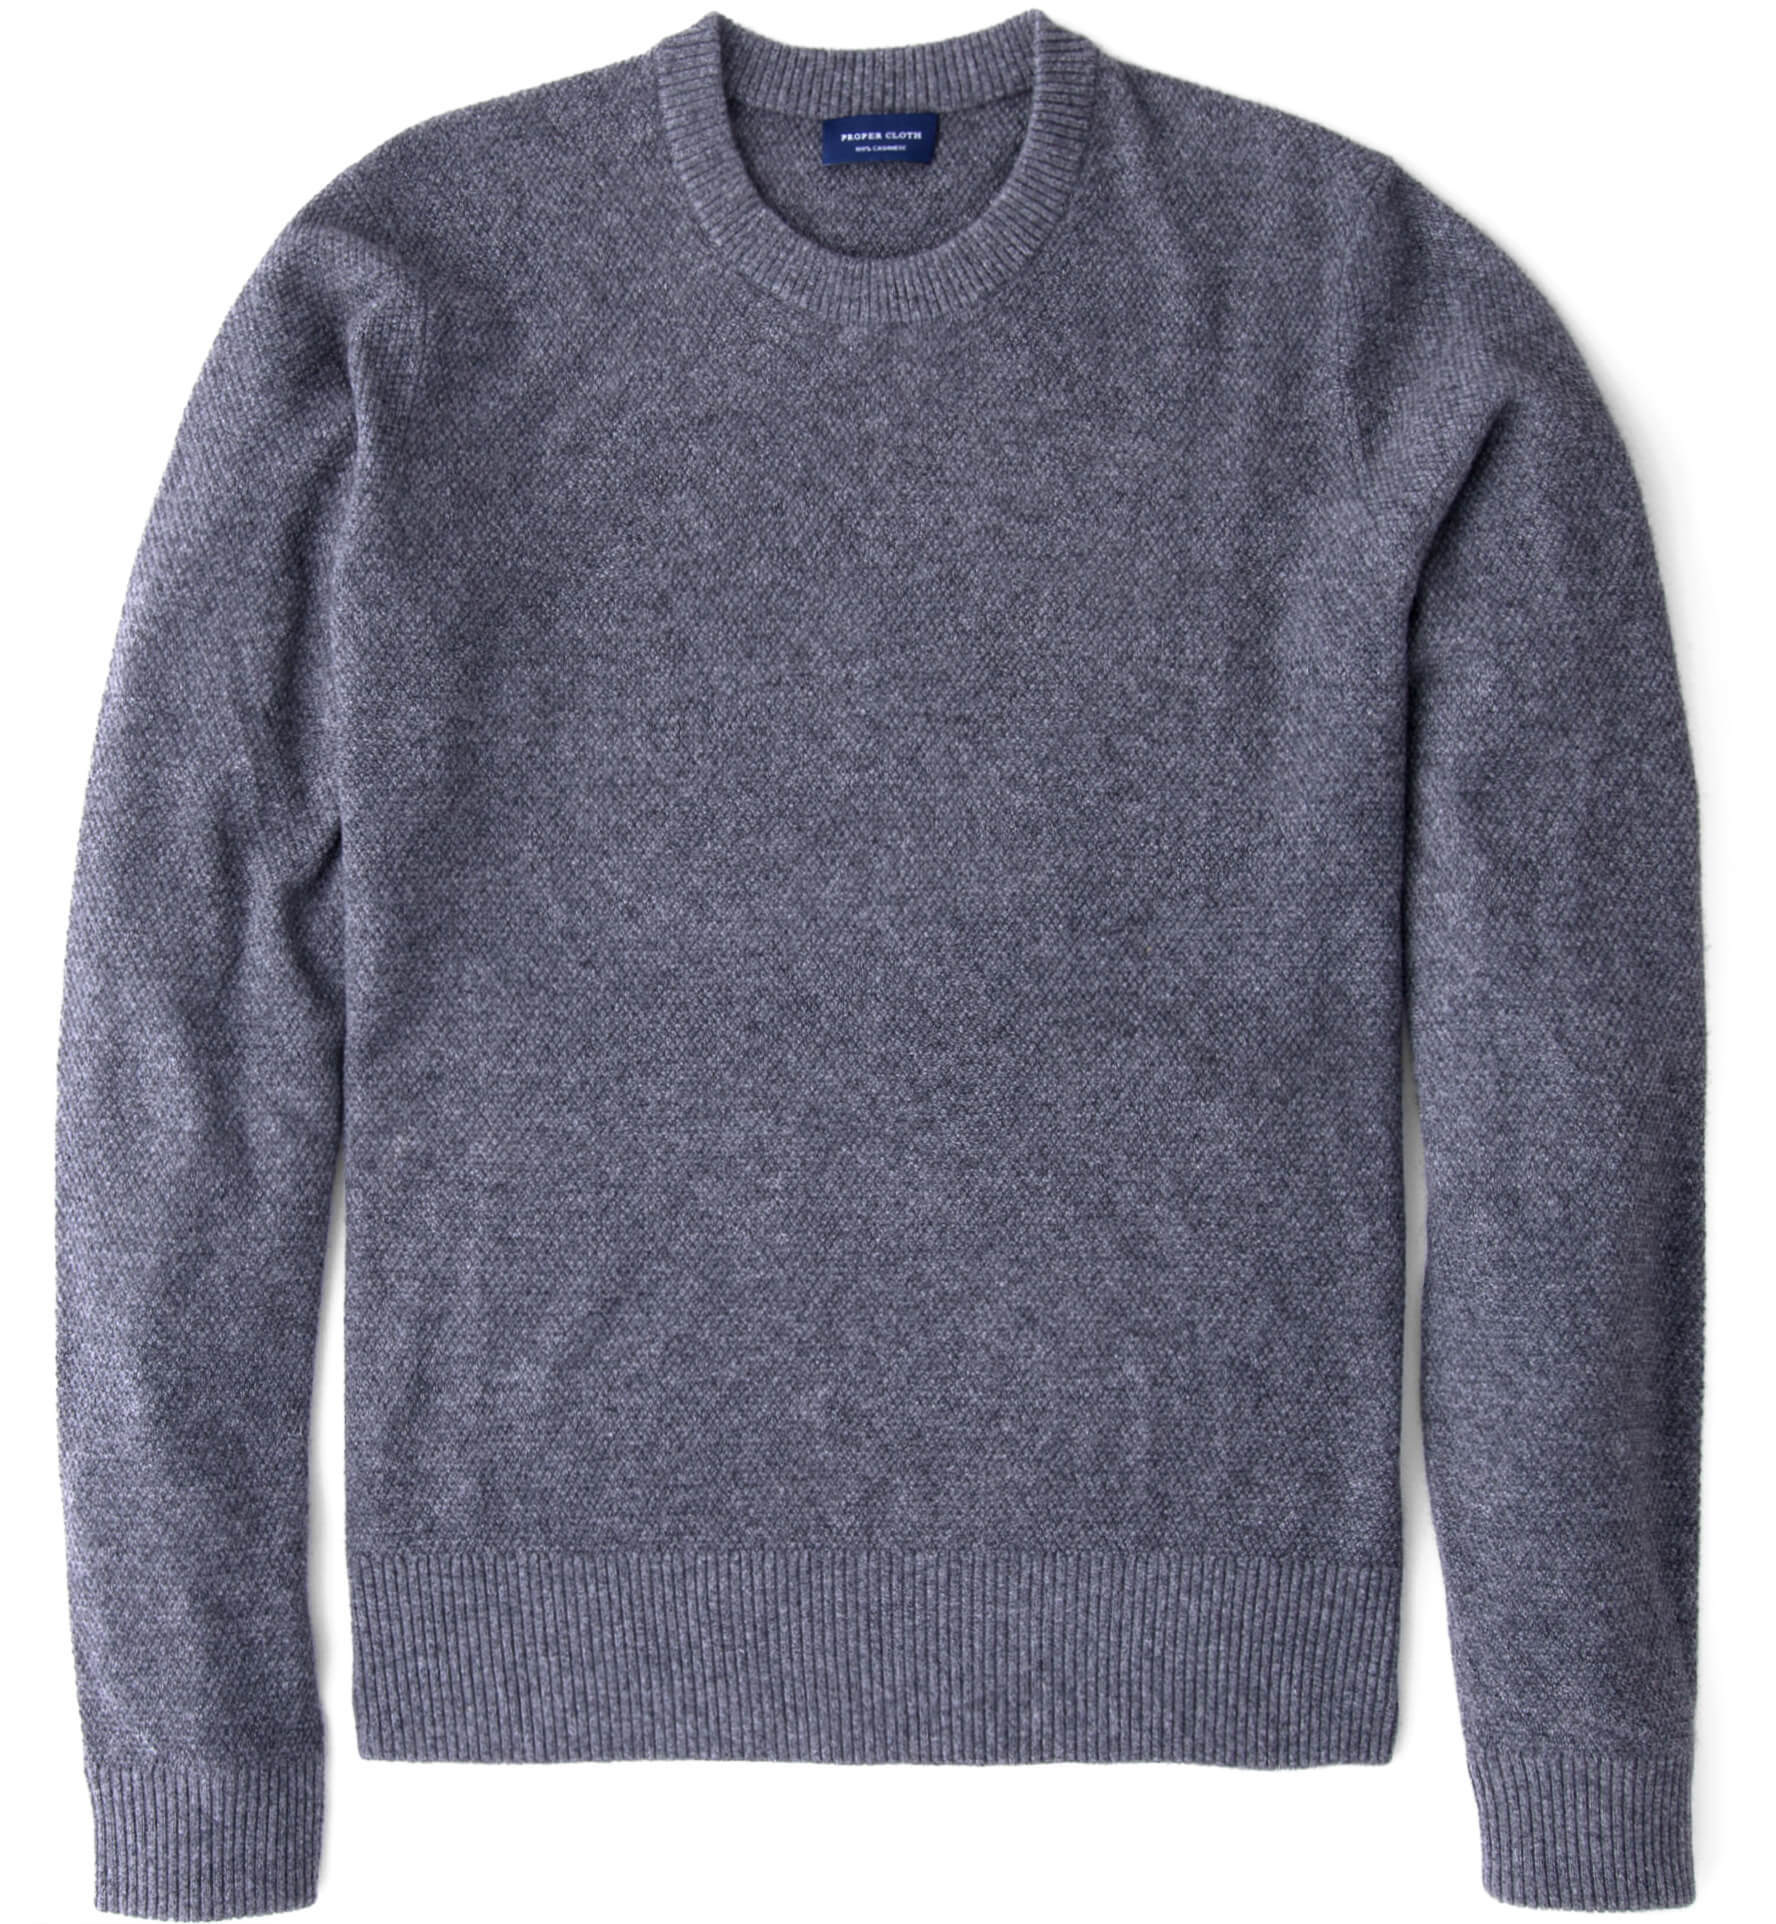 Zoom Image of Grey Cobble Stitch Cashmere Crewneck Sweater